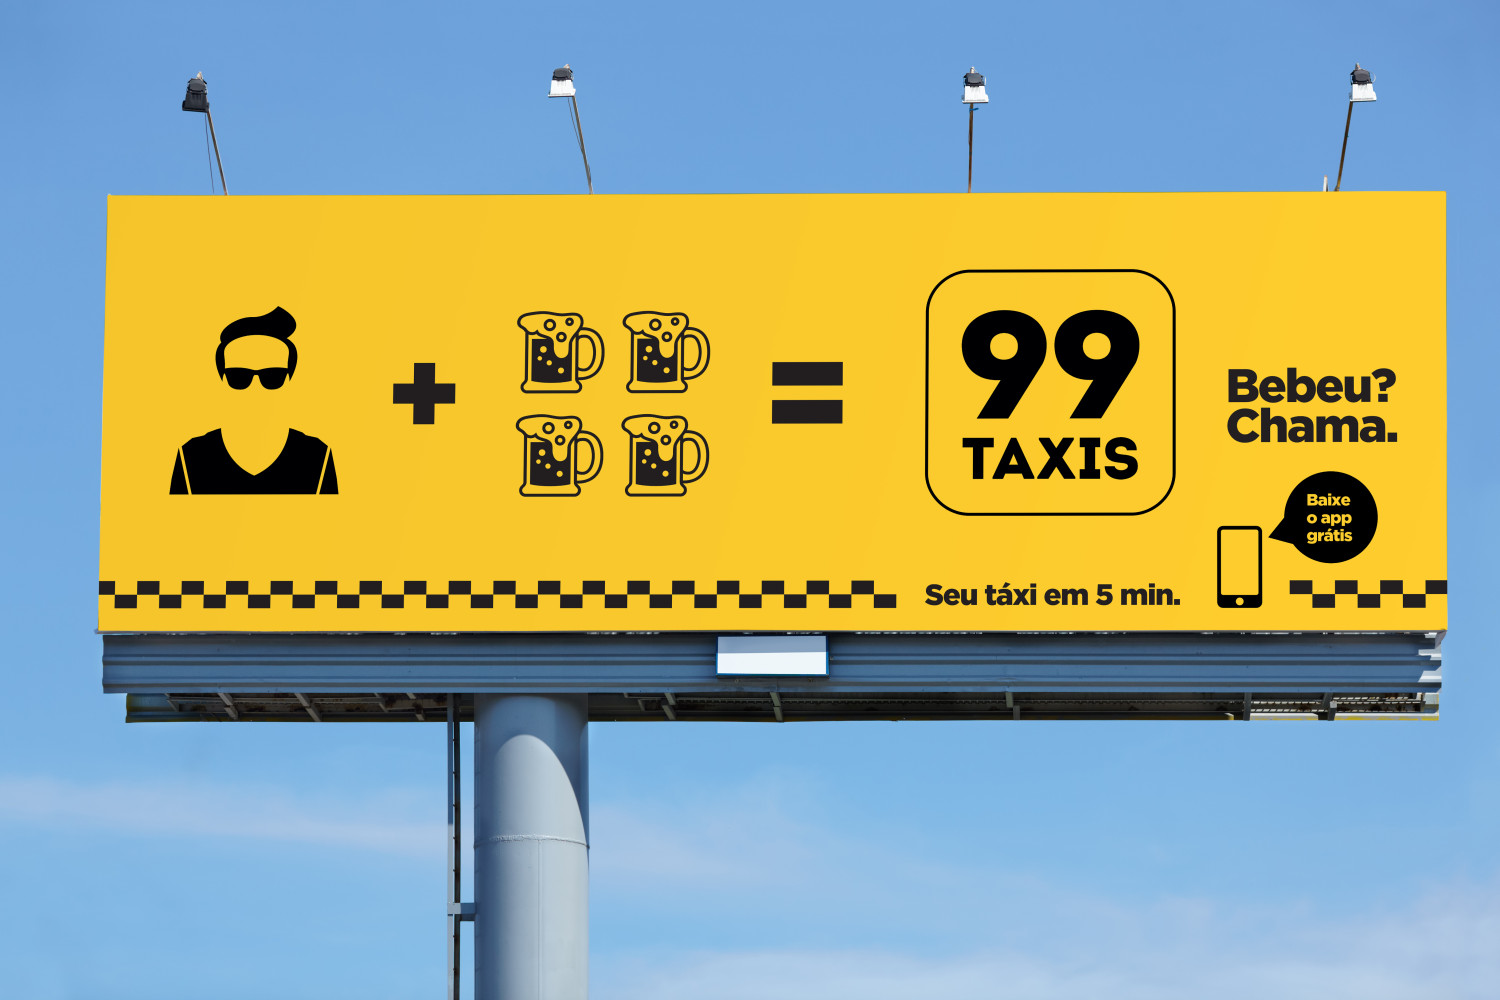 99 taxis 4